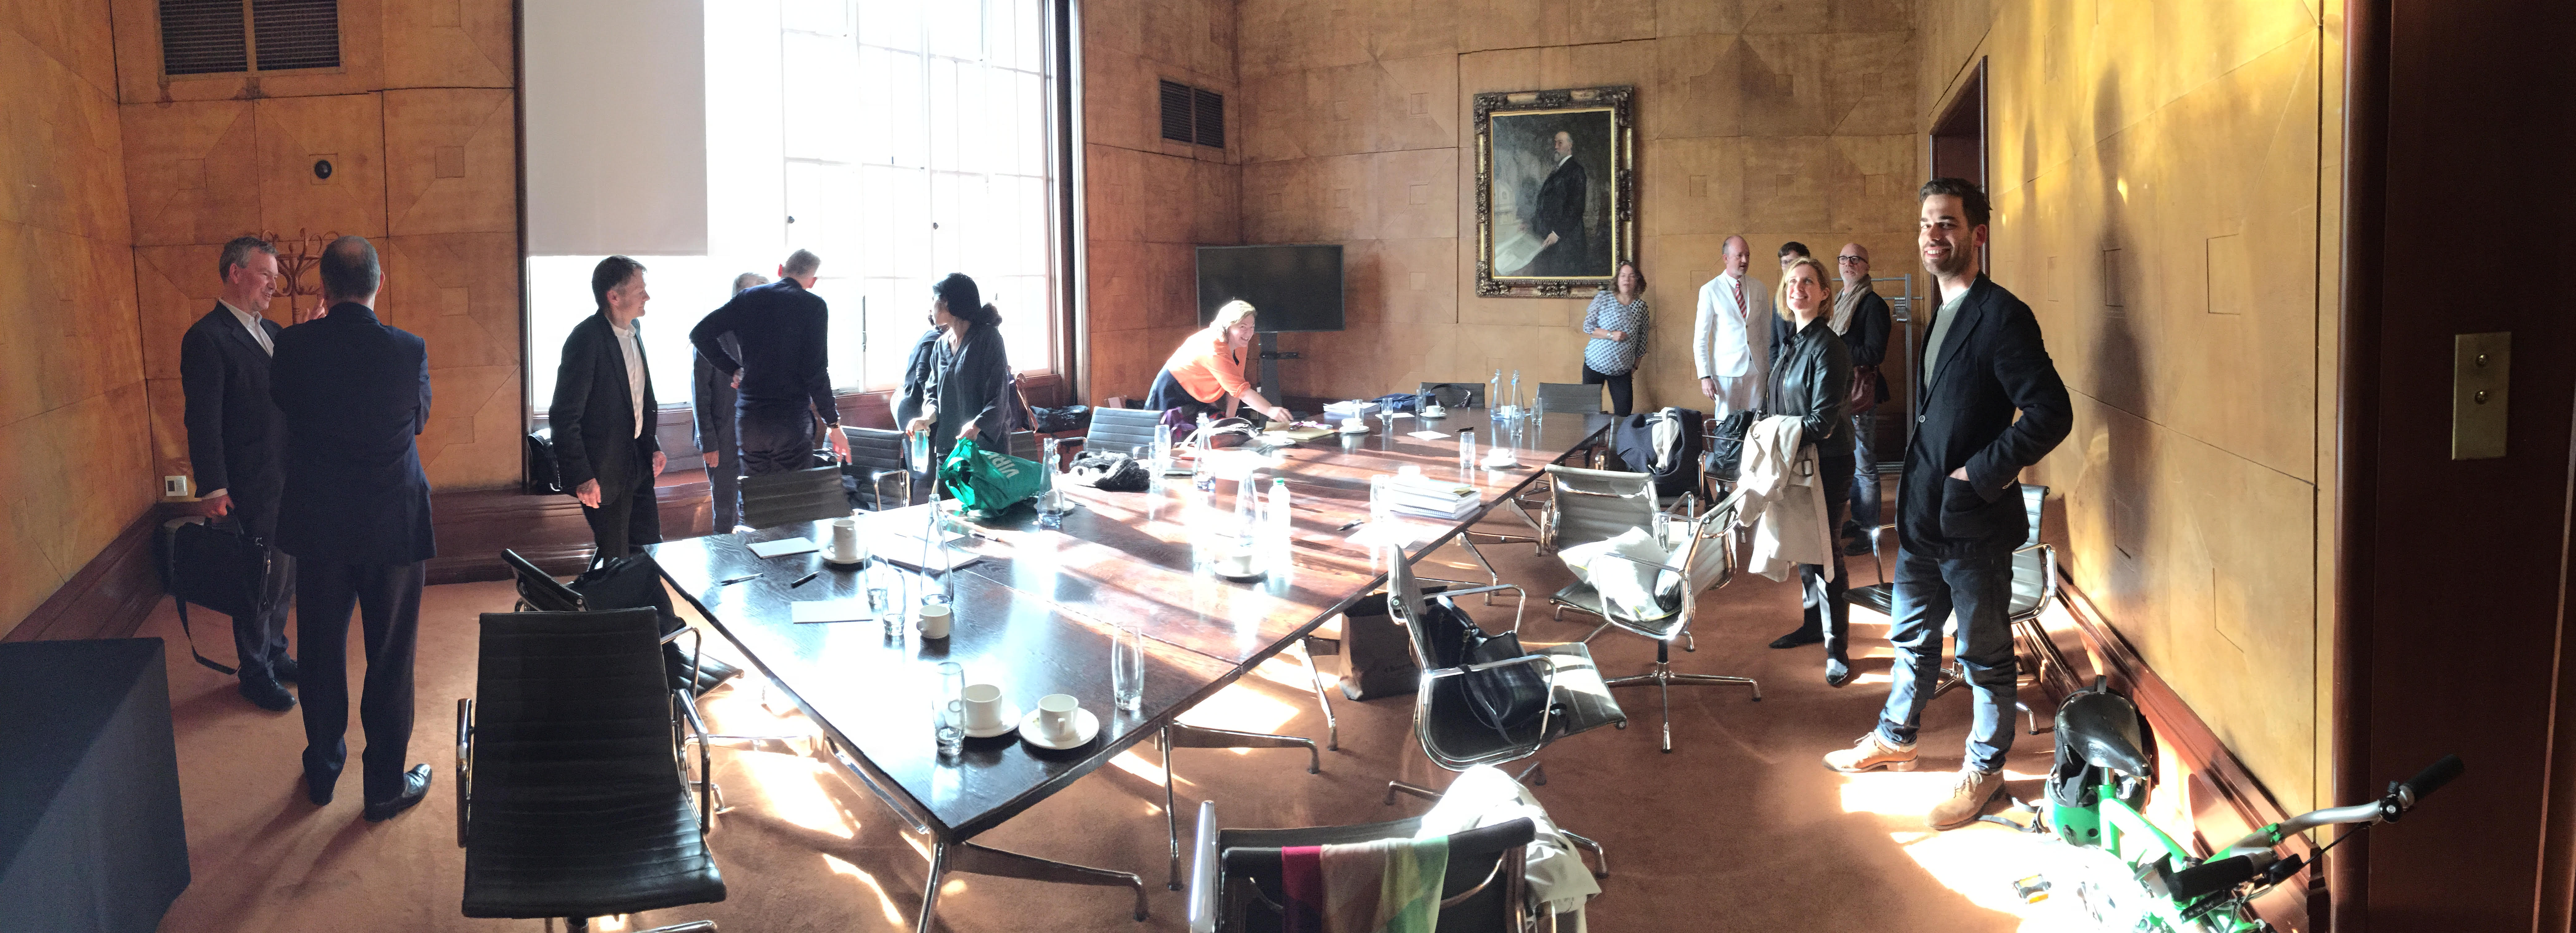 Fig. 30. The validation event at RIBA, from left, Alan Powers, unknown, Tom Holbrook, two unknown, Shumi Bose (turning to window), two women from London Met, a dapper James Soane, Will Hunter, eclipsed by Deborah Saunt, Nigel Coates and a grinning Lewis Kinneir.